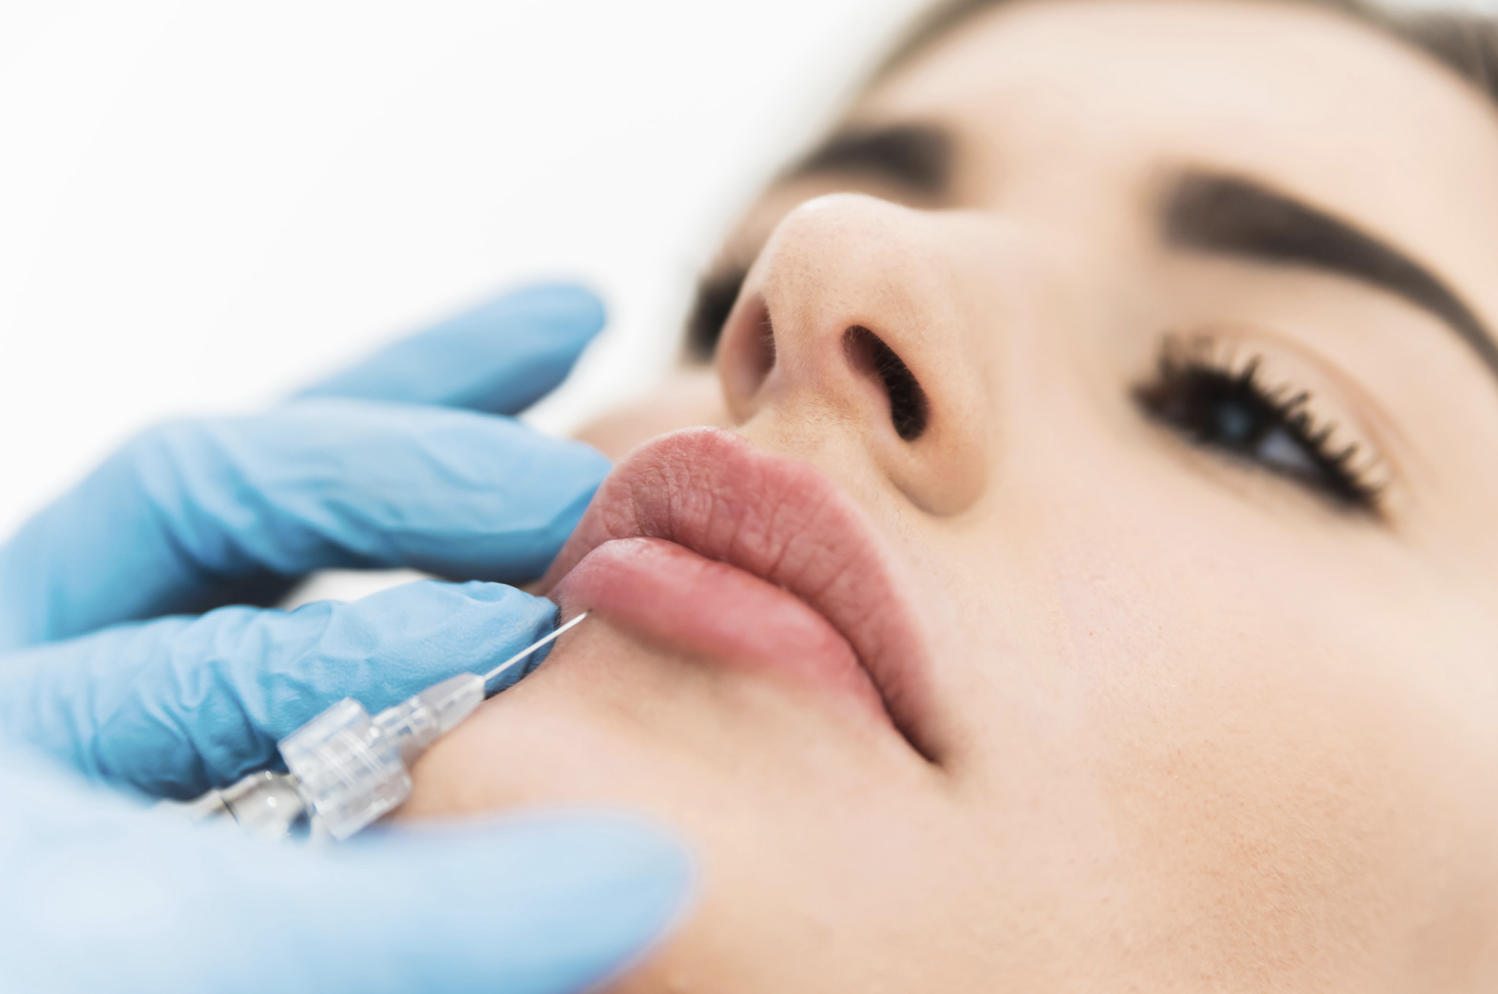 Lips fillers: How long do they last? How much do they cost? This is everything you need to know